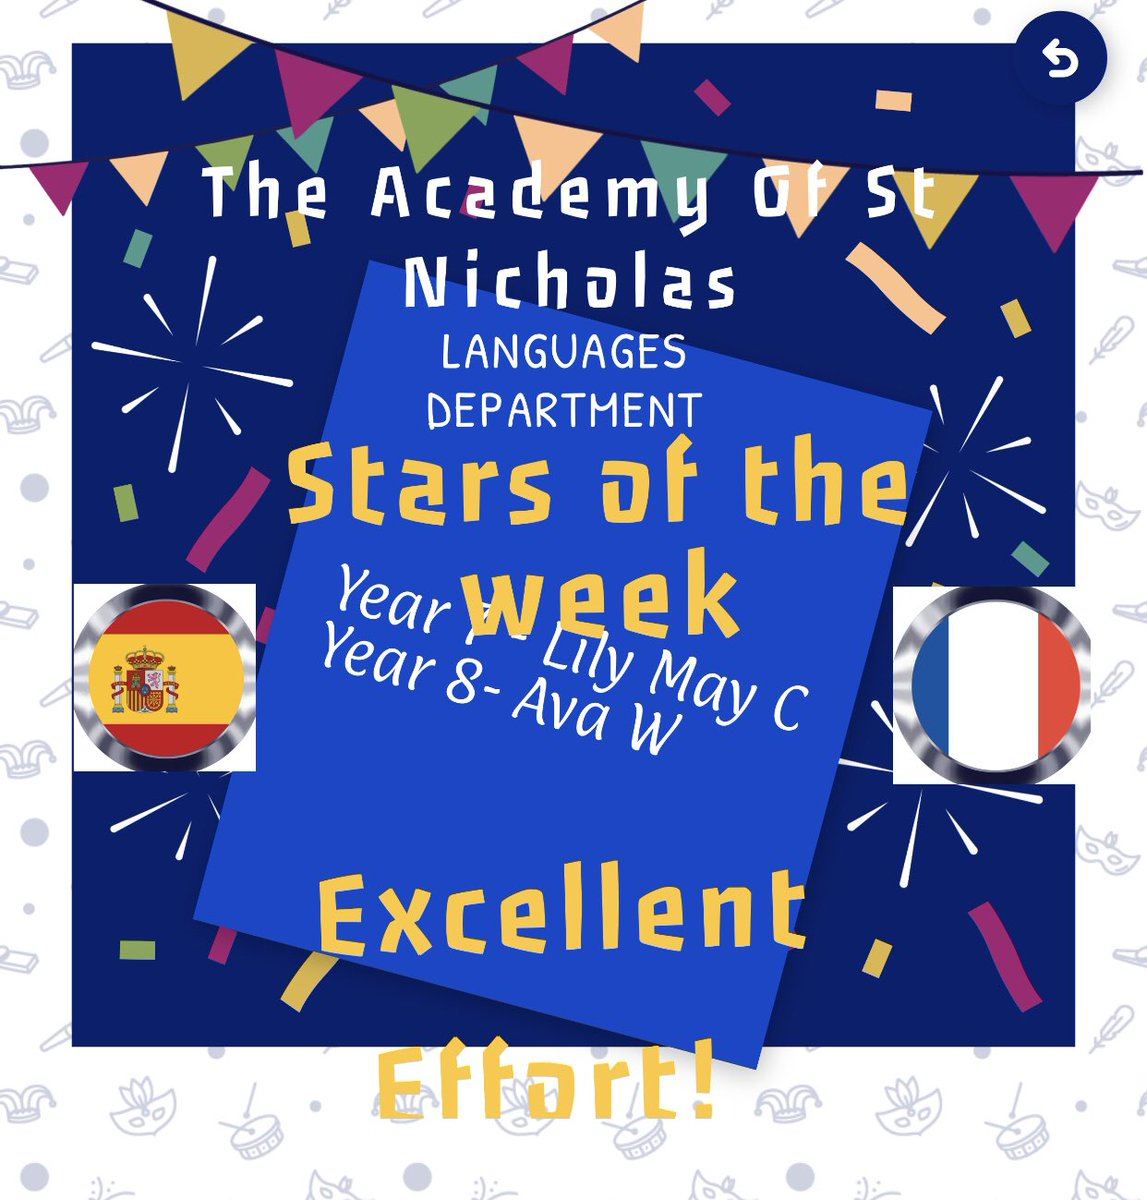 Well done to MFL stars of the week this week! Keep up the good work!